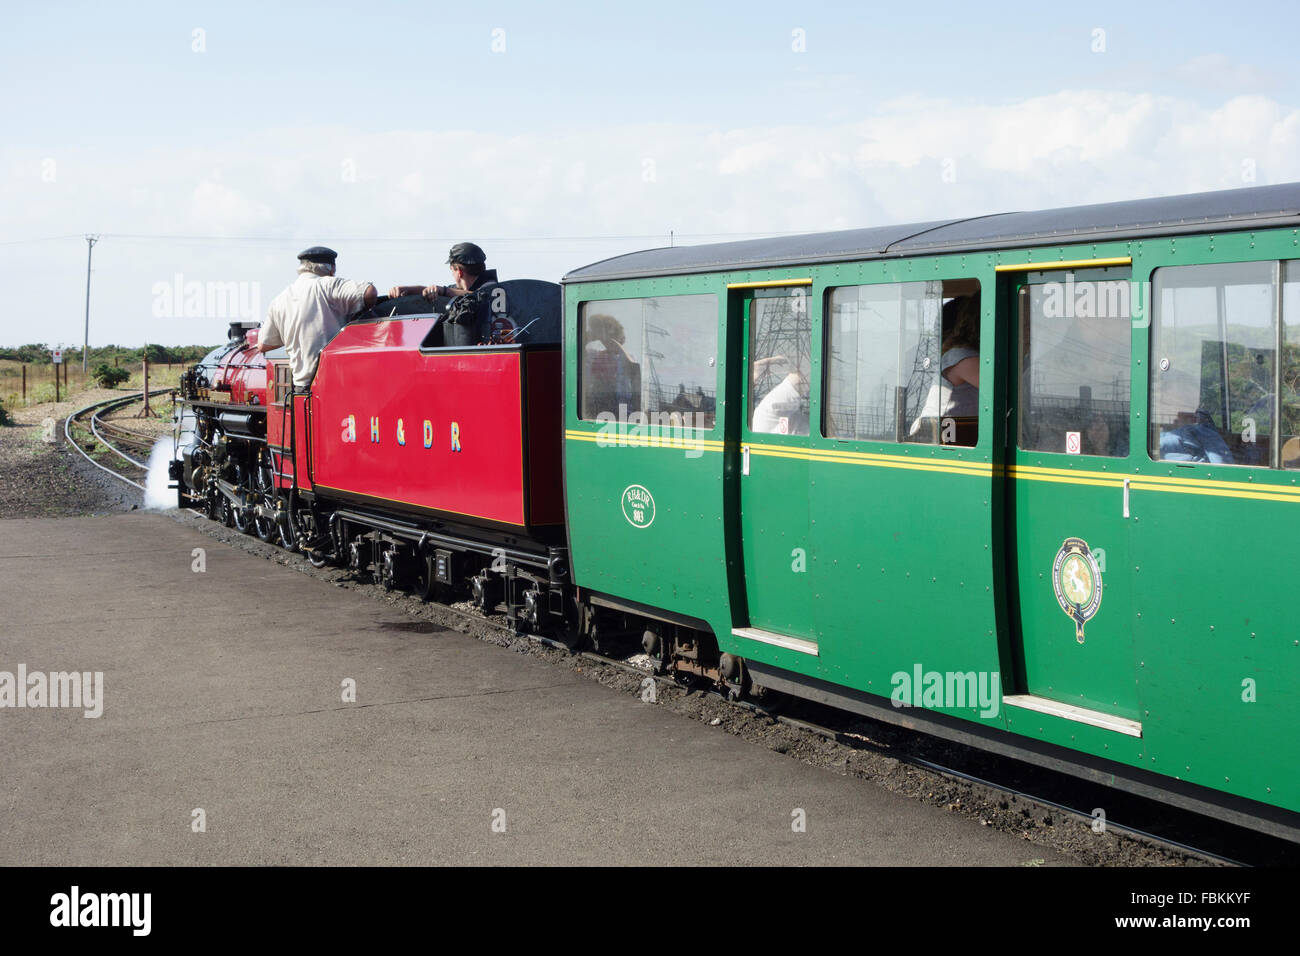 England, Kent, Dungeness. The miniature steam locomotive, 'Winston Churchill' prepares to leave the station Stock Photo